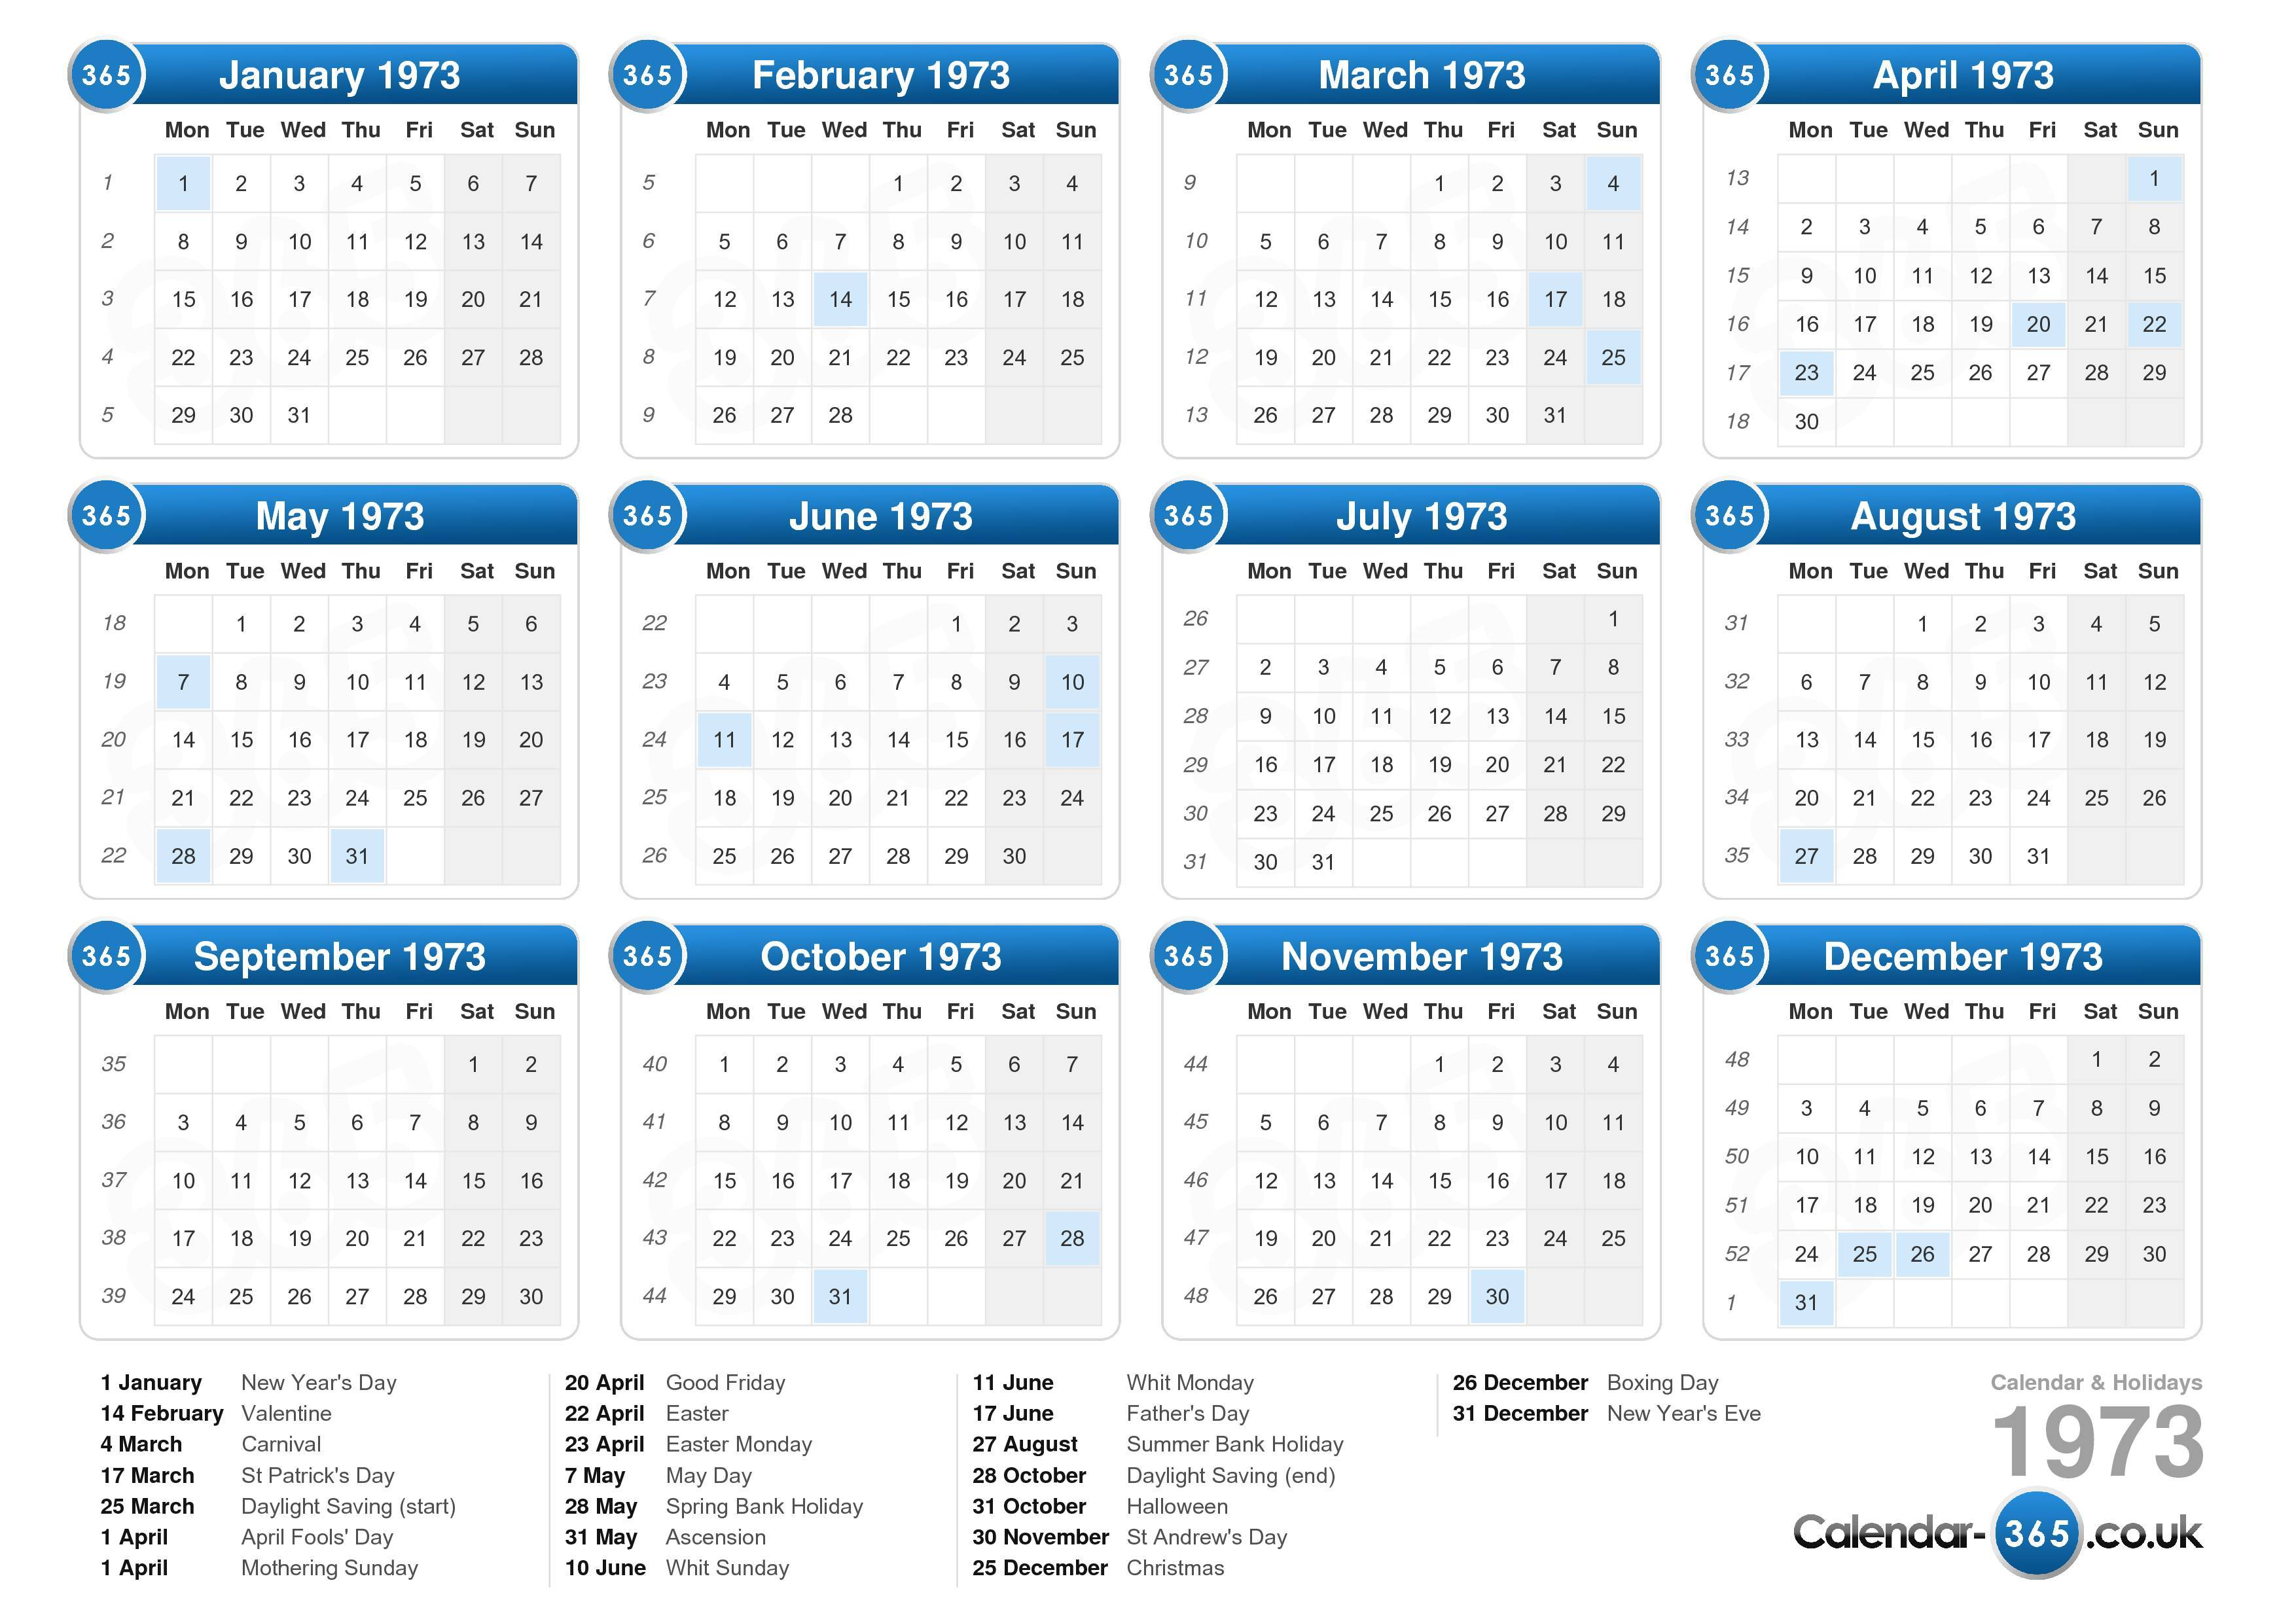 Download the printable calendar 1973 with holidays.